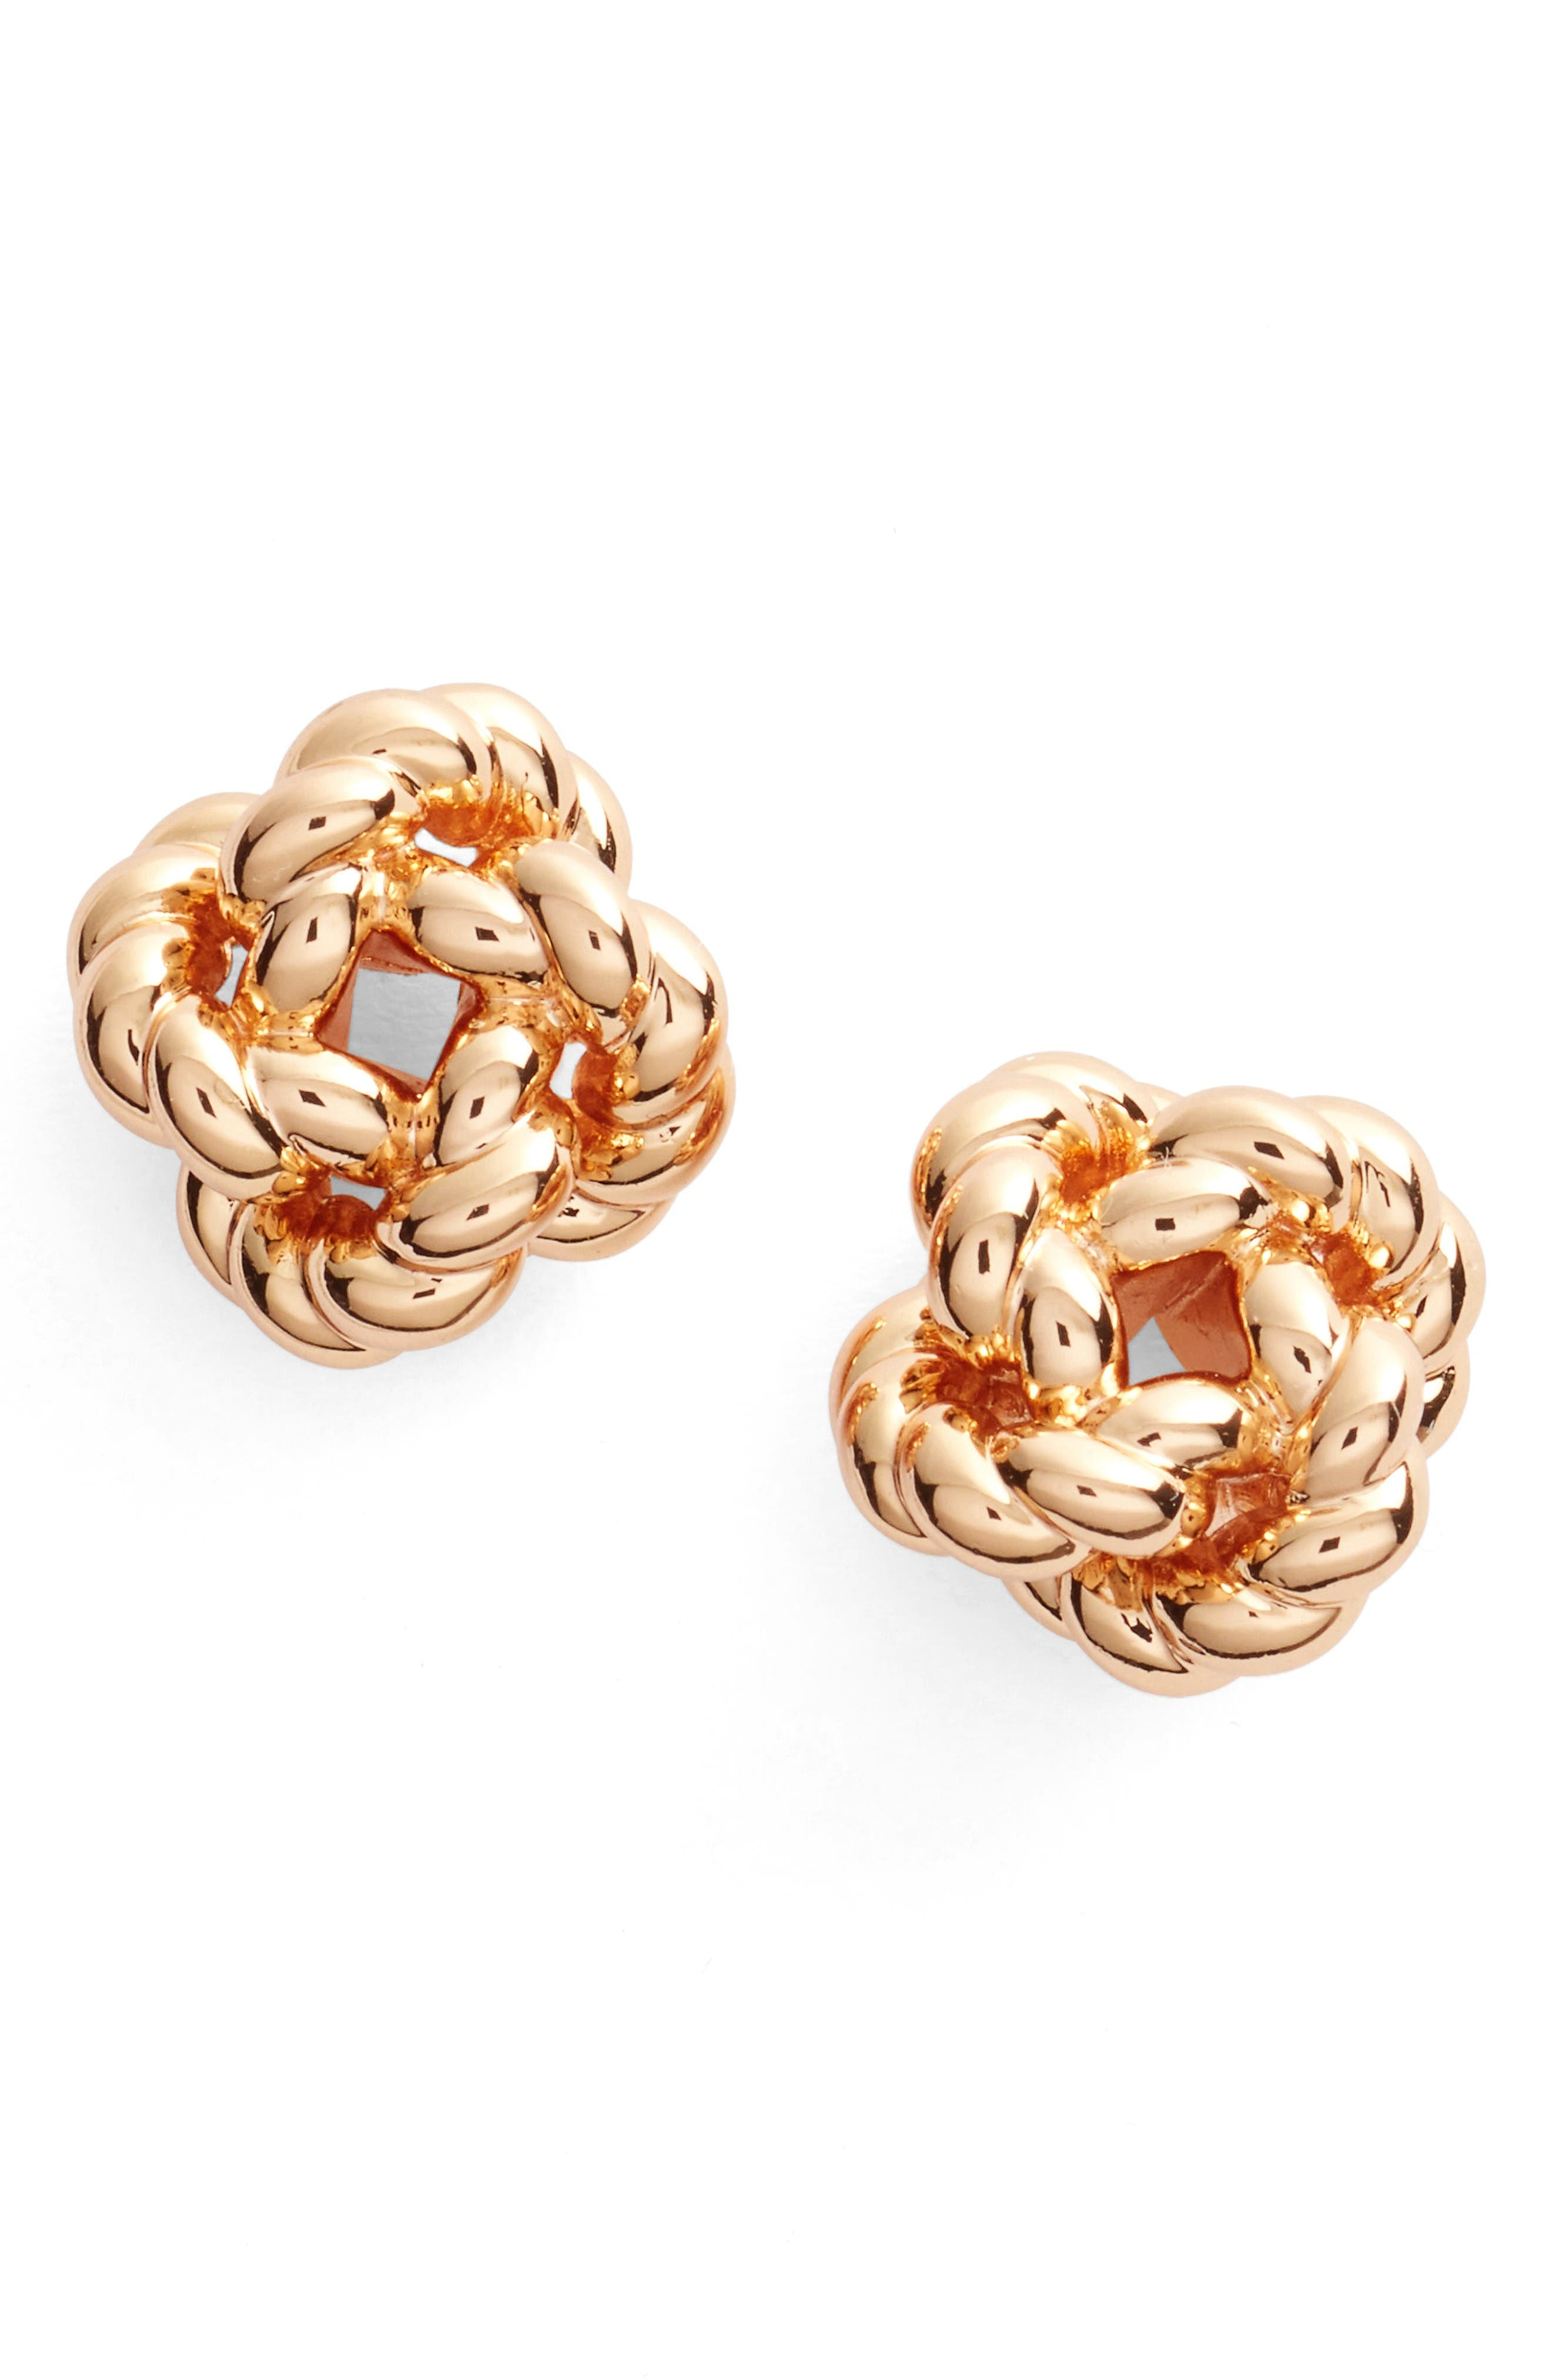 Alternate Image 1 Selected - Tory Burch Rope Knot Stud Earrings